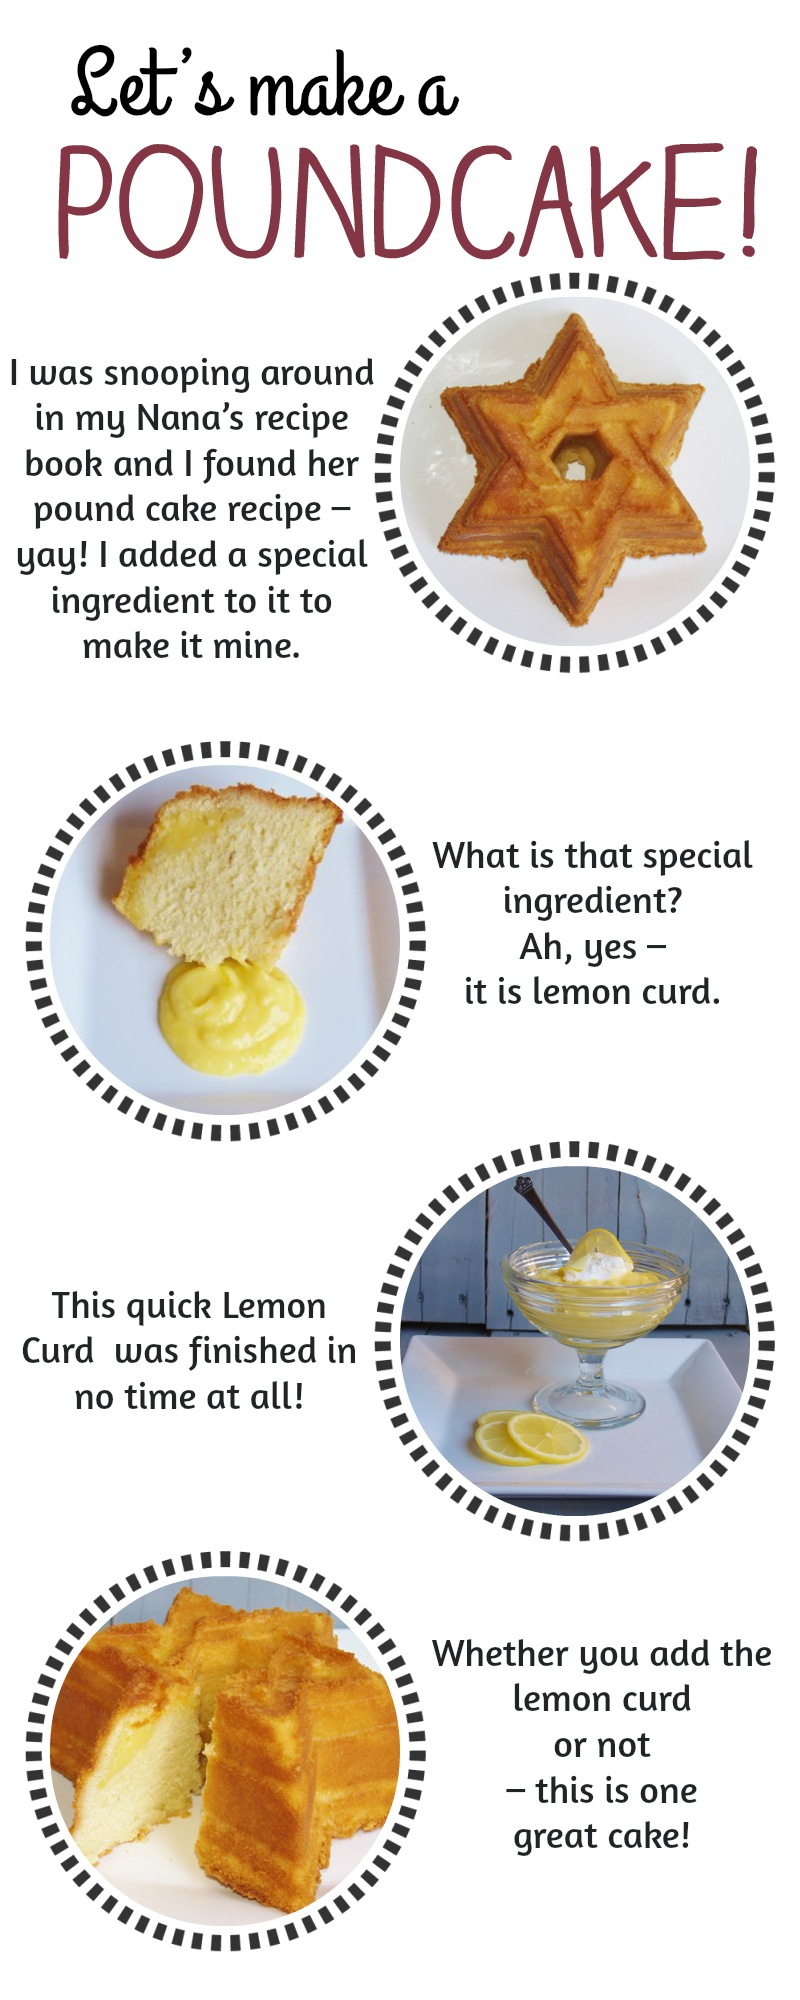 Nana's Pound Cake with Lemon Curd- Recipe for southern pound cake with vanilla bean and lemon curd via @KitchenKelli